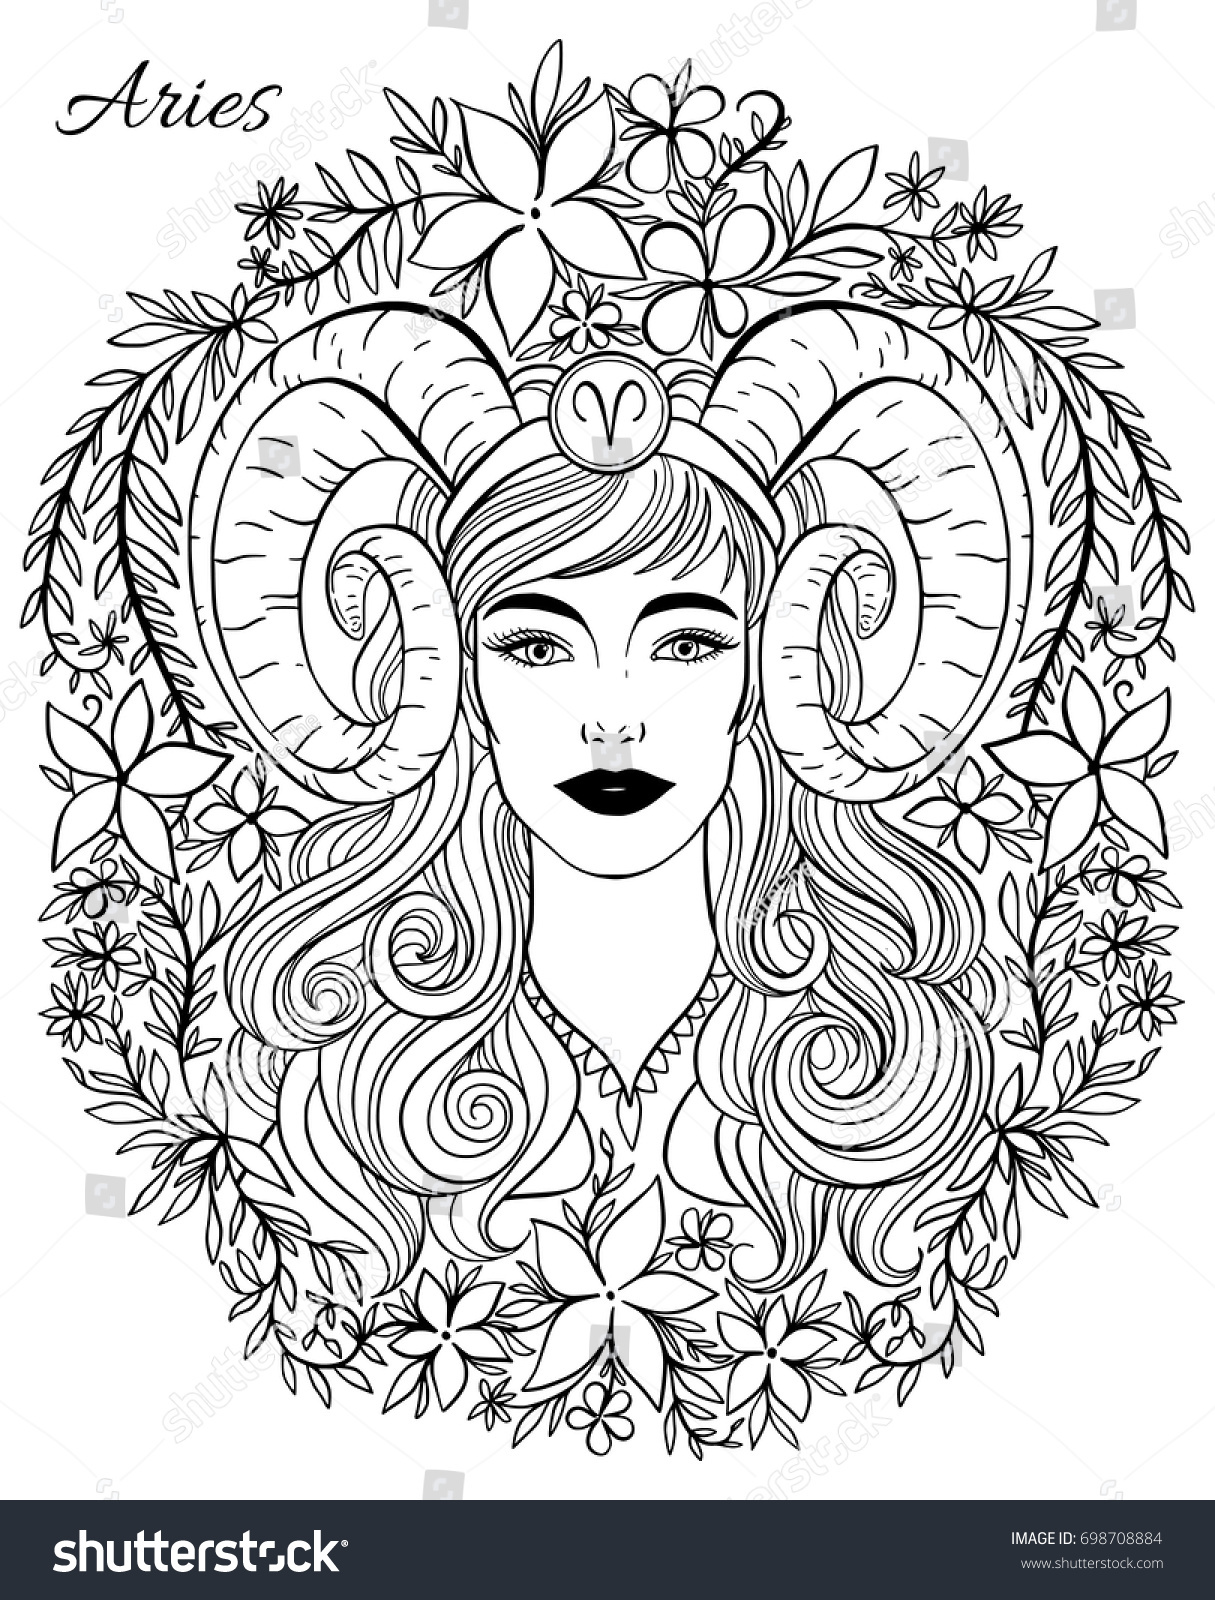 Zodiac sign aries woman hand drawn stock vector 698708884 for Flowers for aries woman